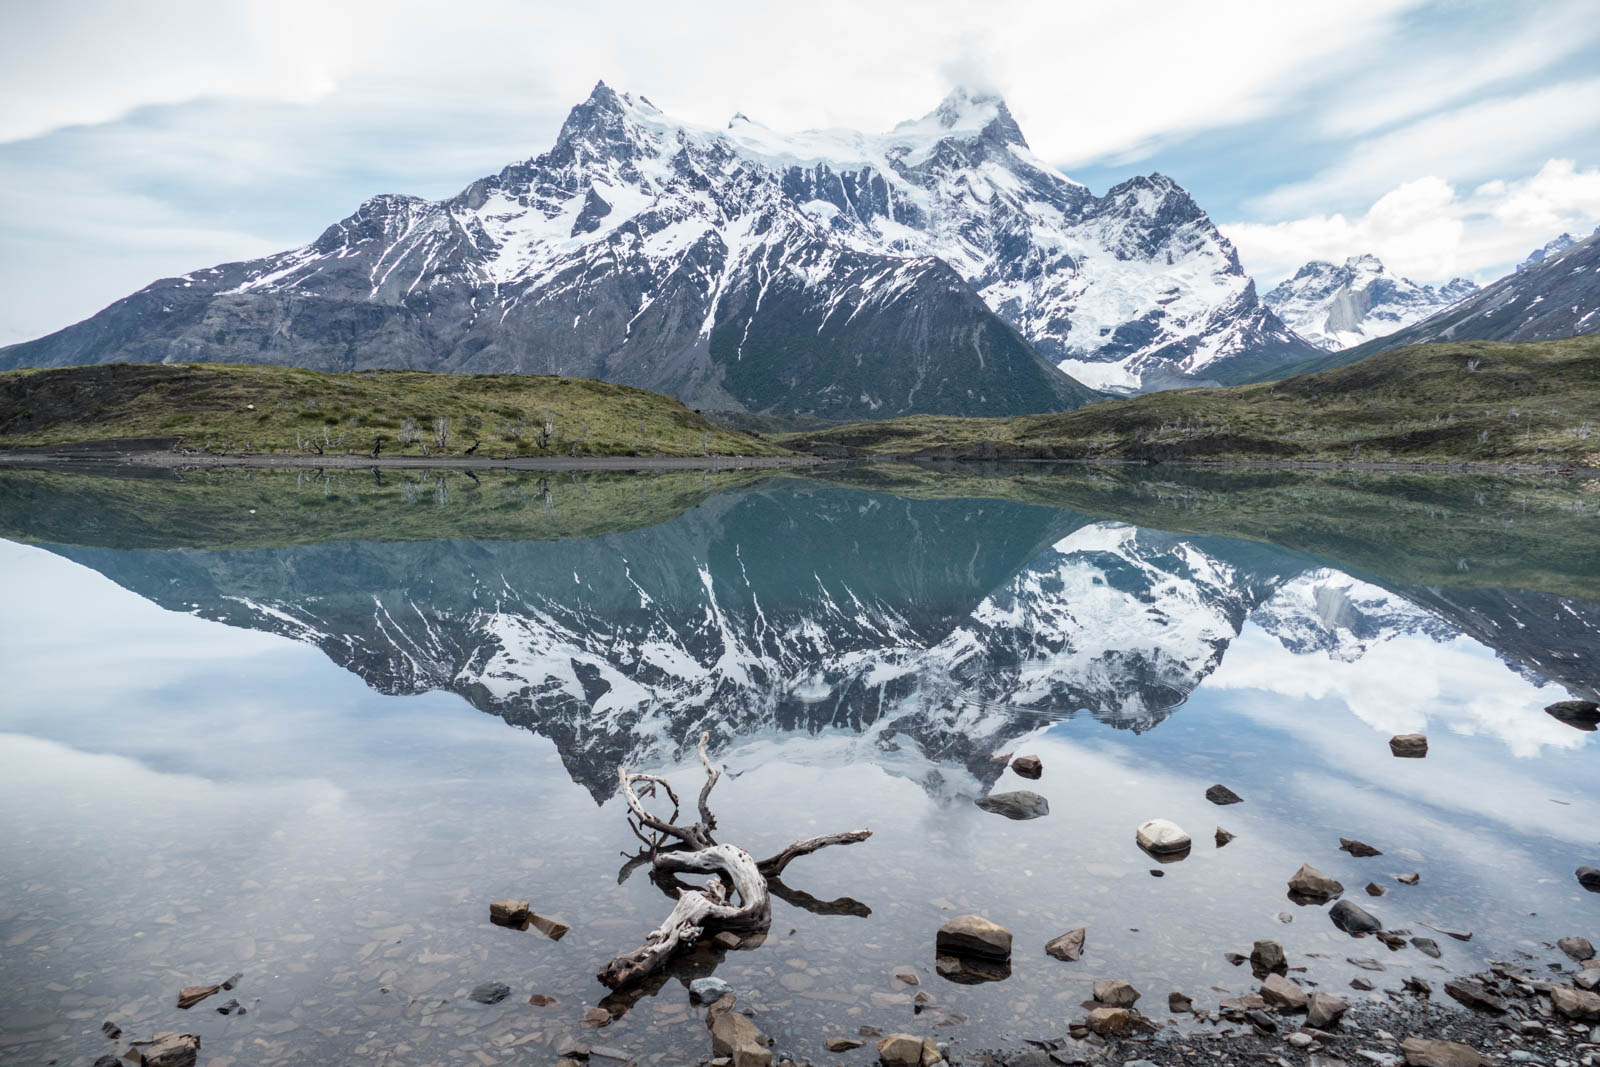 A beautiful laguna with reflection of the mountains on the hike to Mirador Cuernos at an unusual windless moment